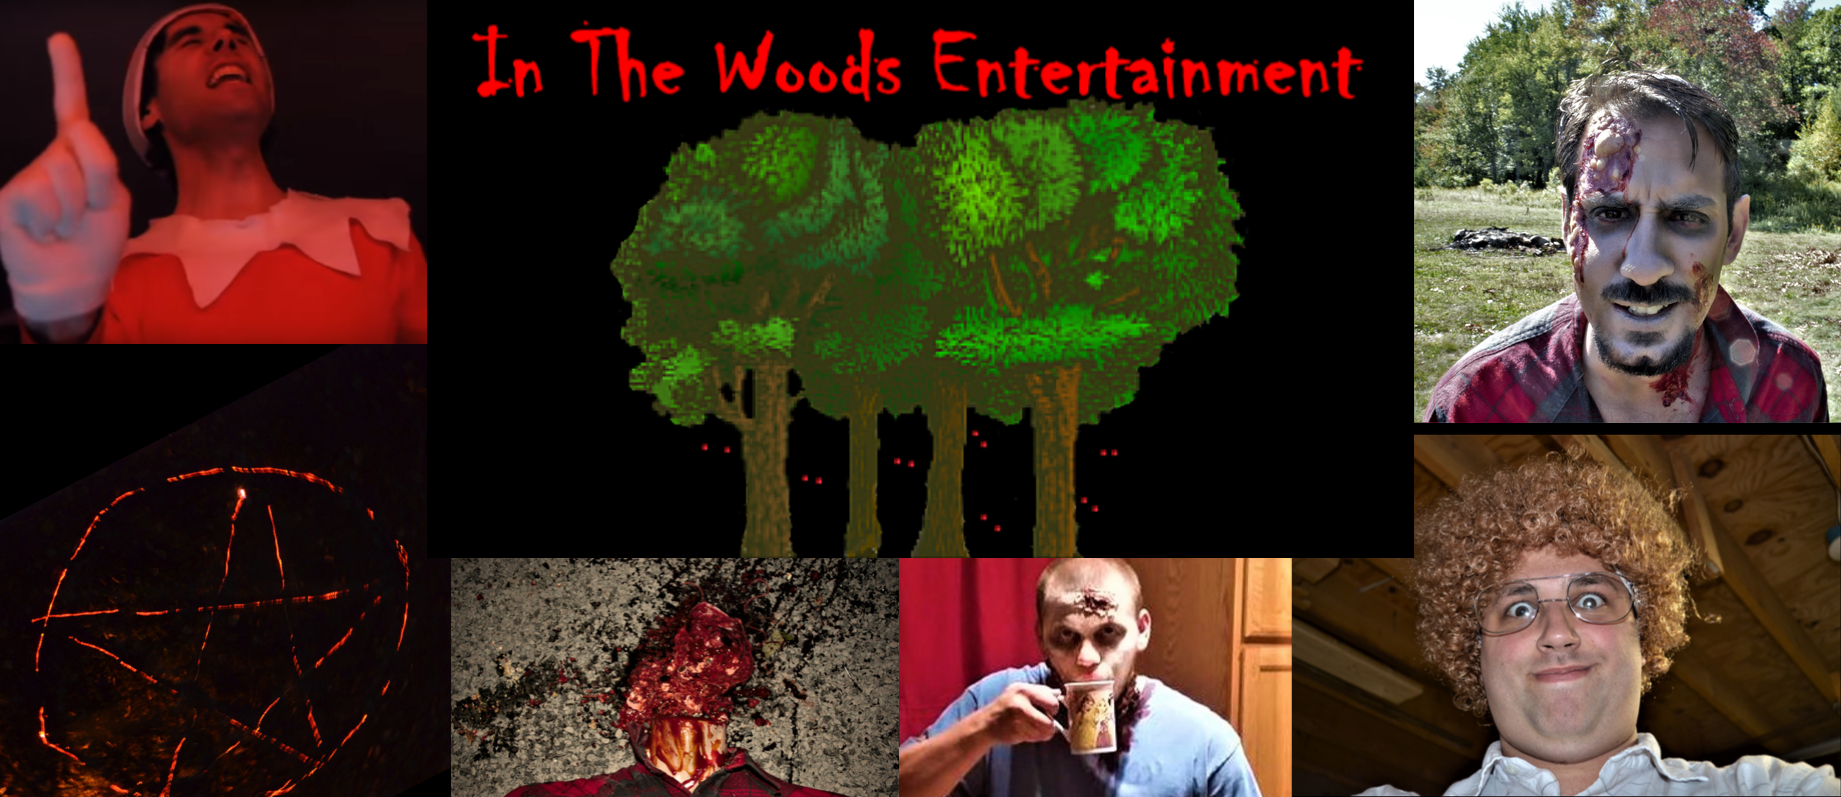 In The Woods Entertainment